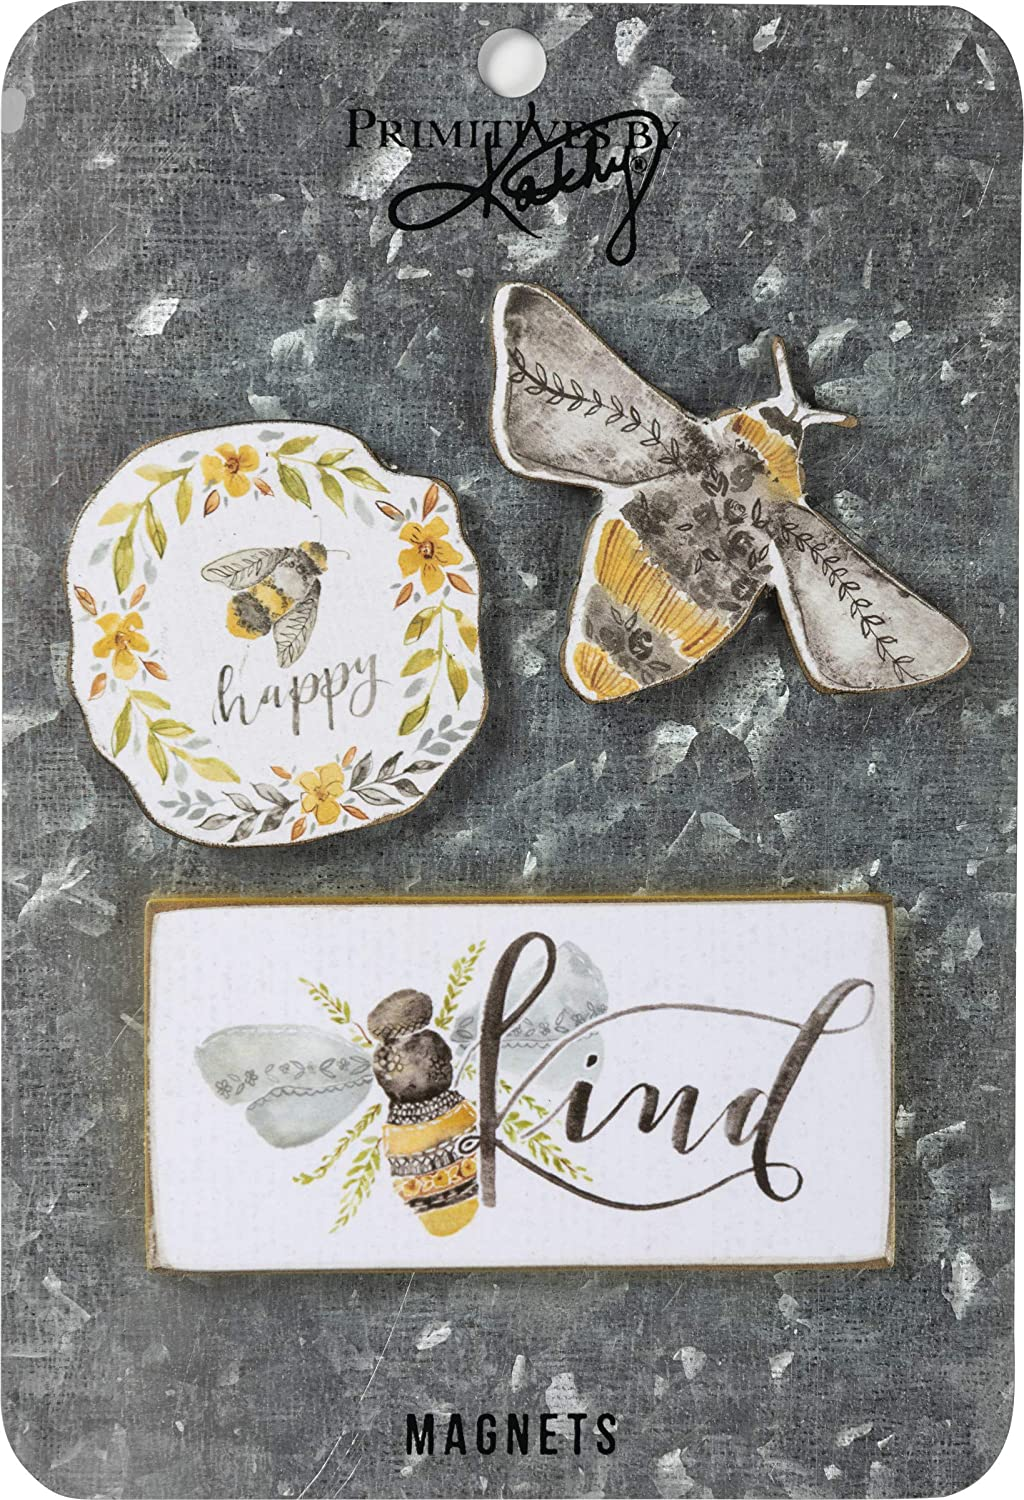 Primitives by Kathy Magnet Set, Set of 3, Bee